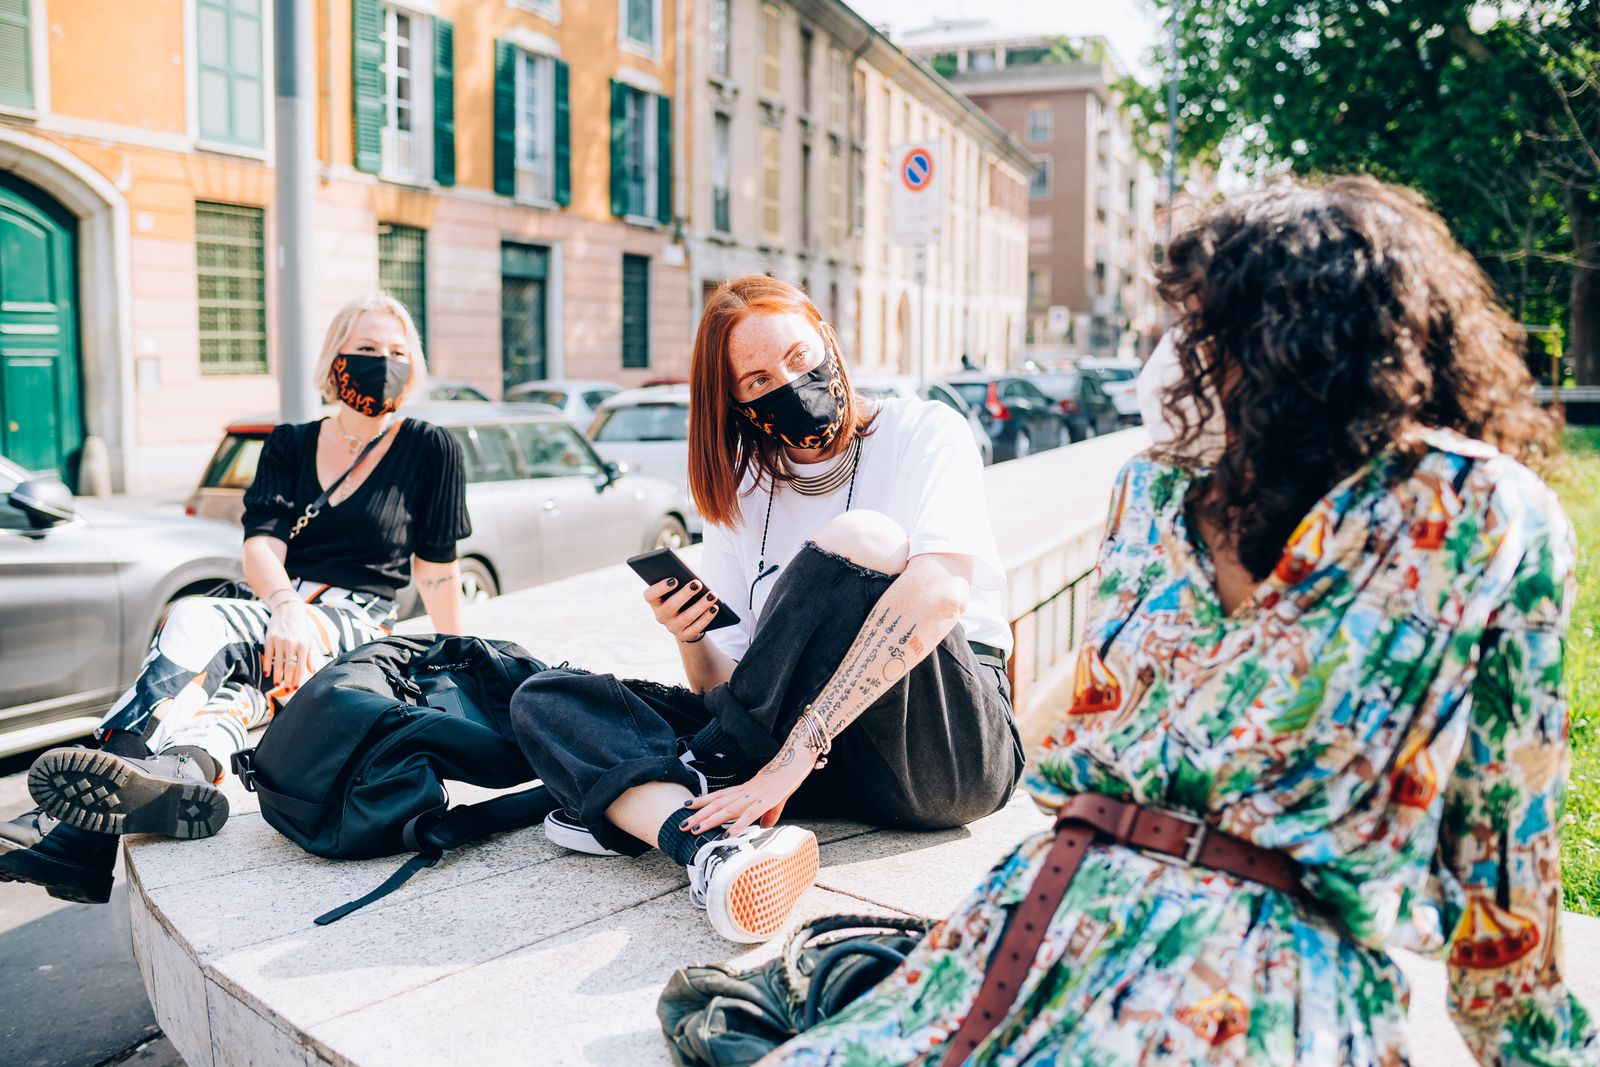 Three young women wearing face masks during Corona virus, sitting on a riverbank, chatting.